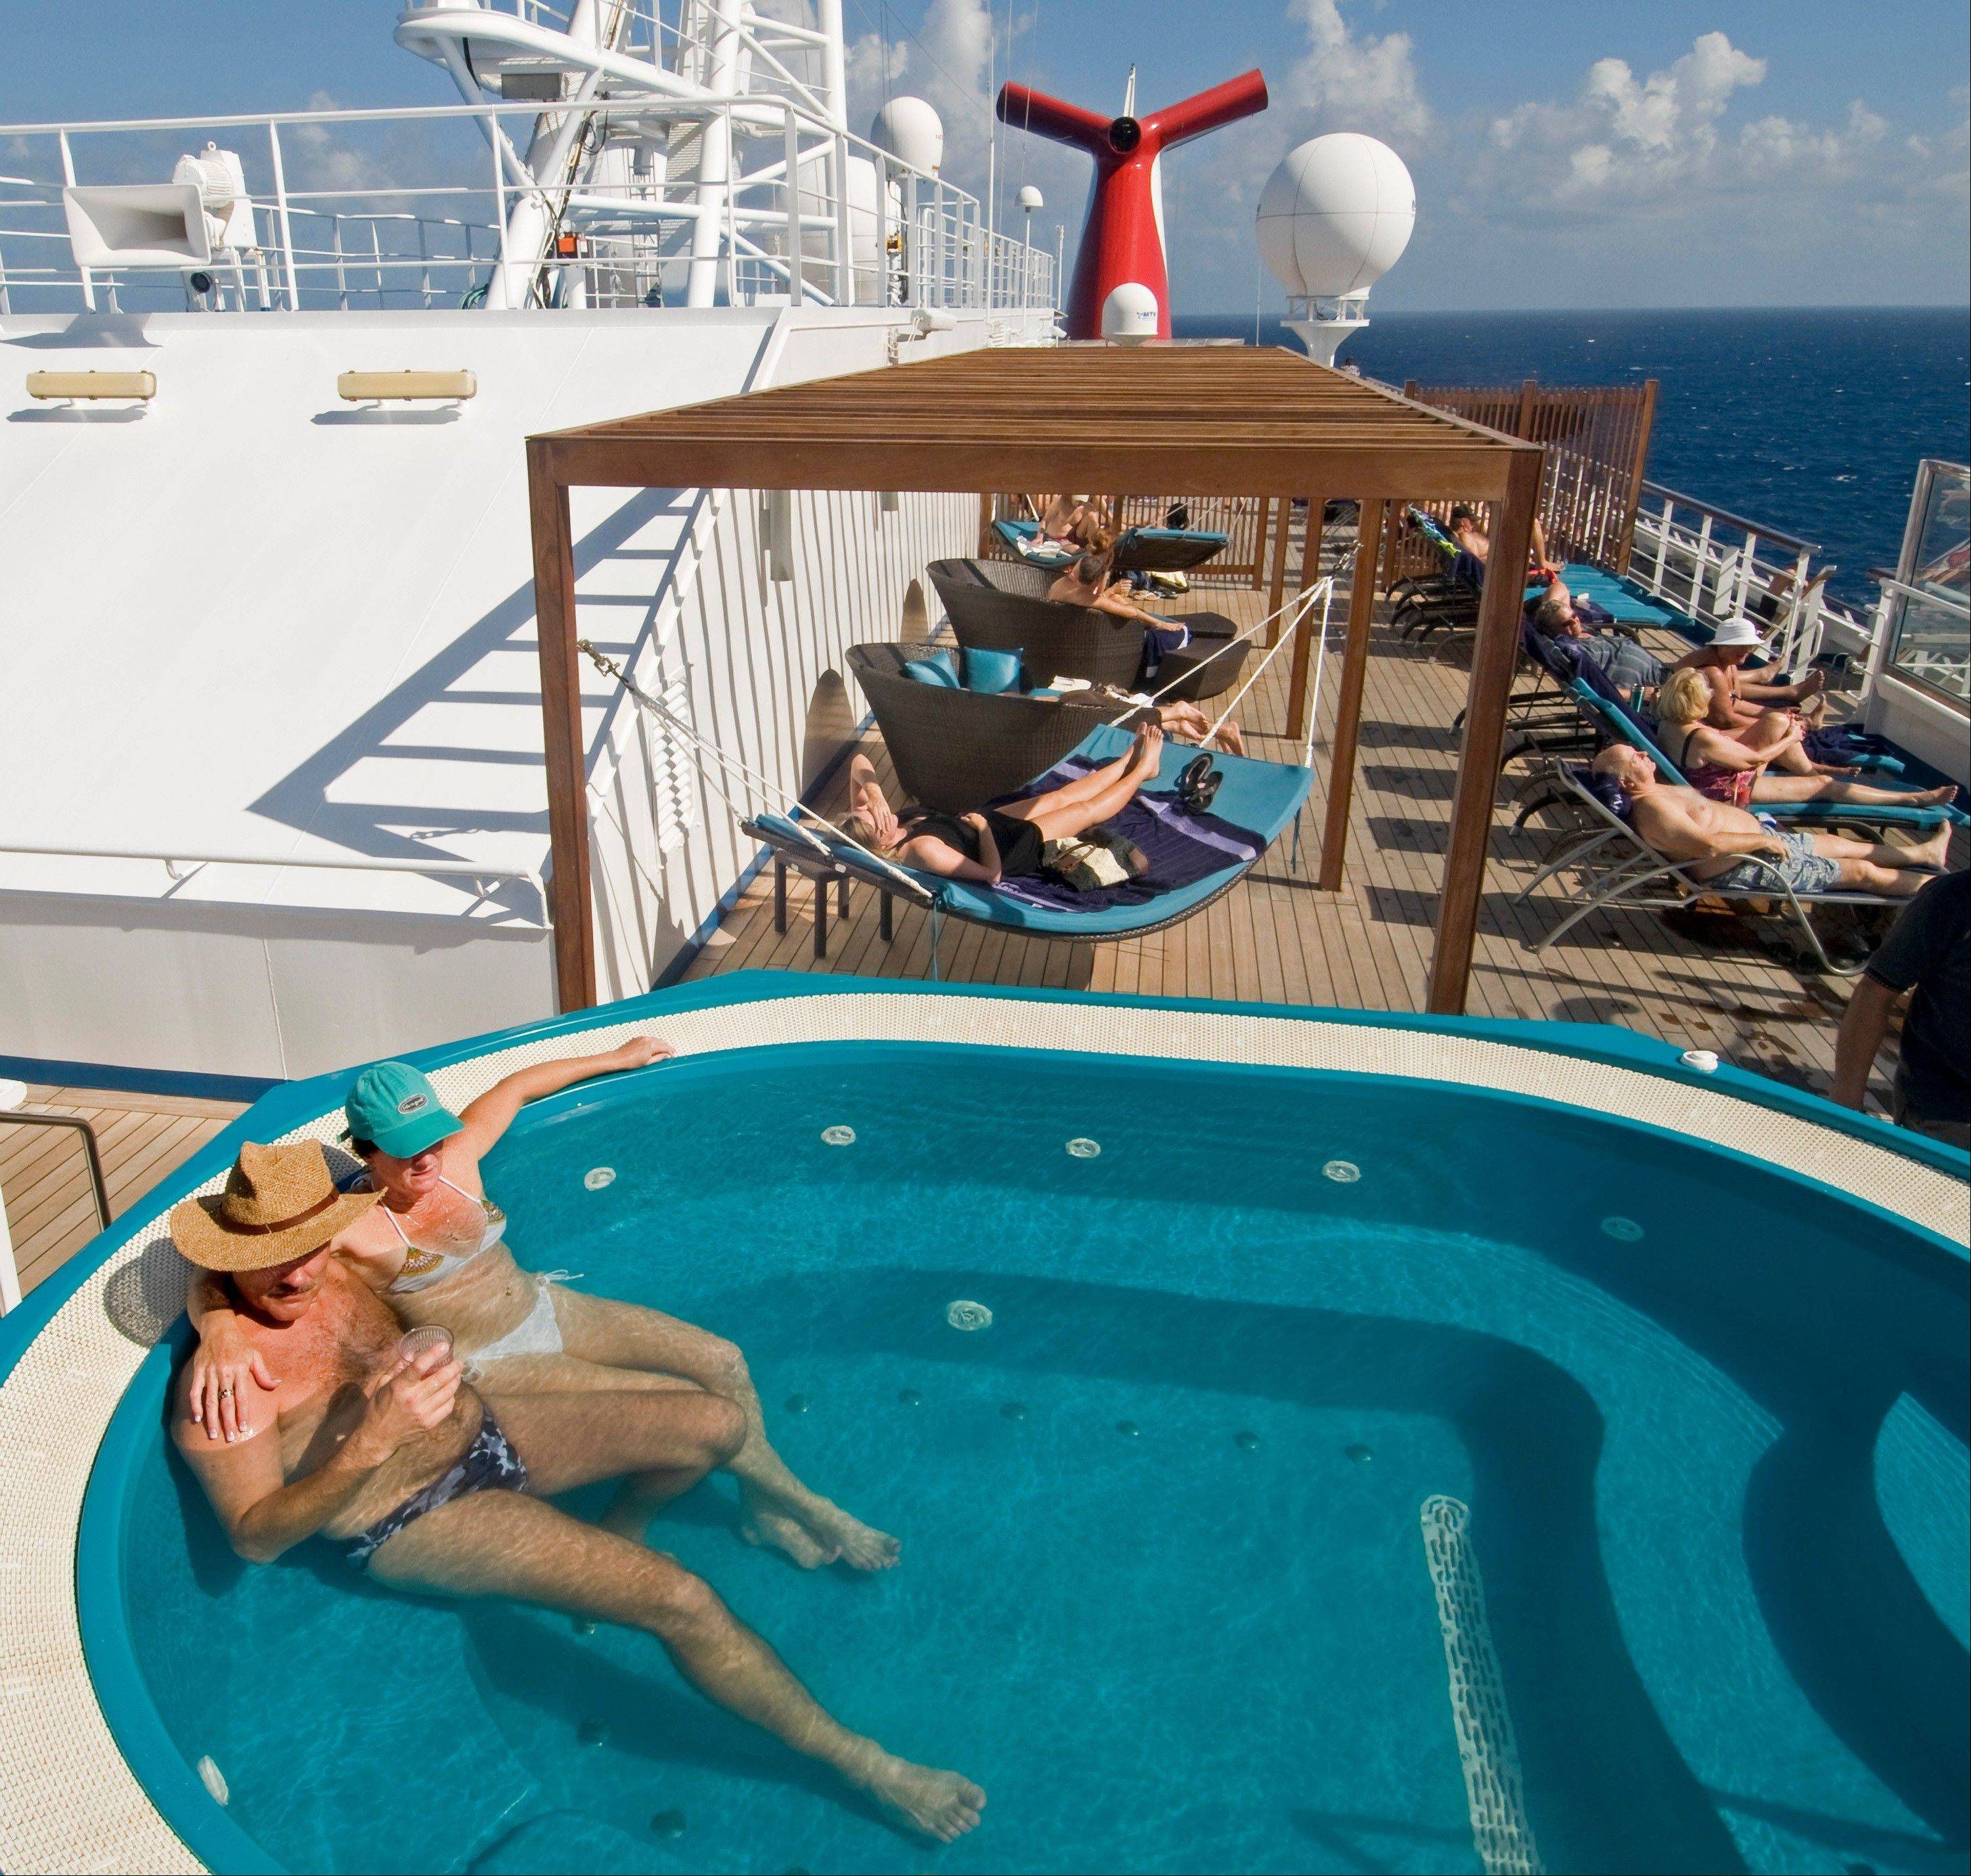 Guests relax in an adults-only areas aboard the Carnival Liberty.